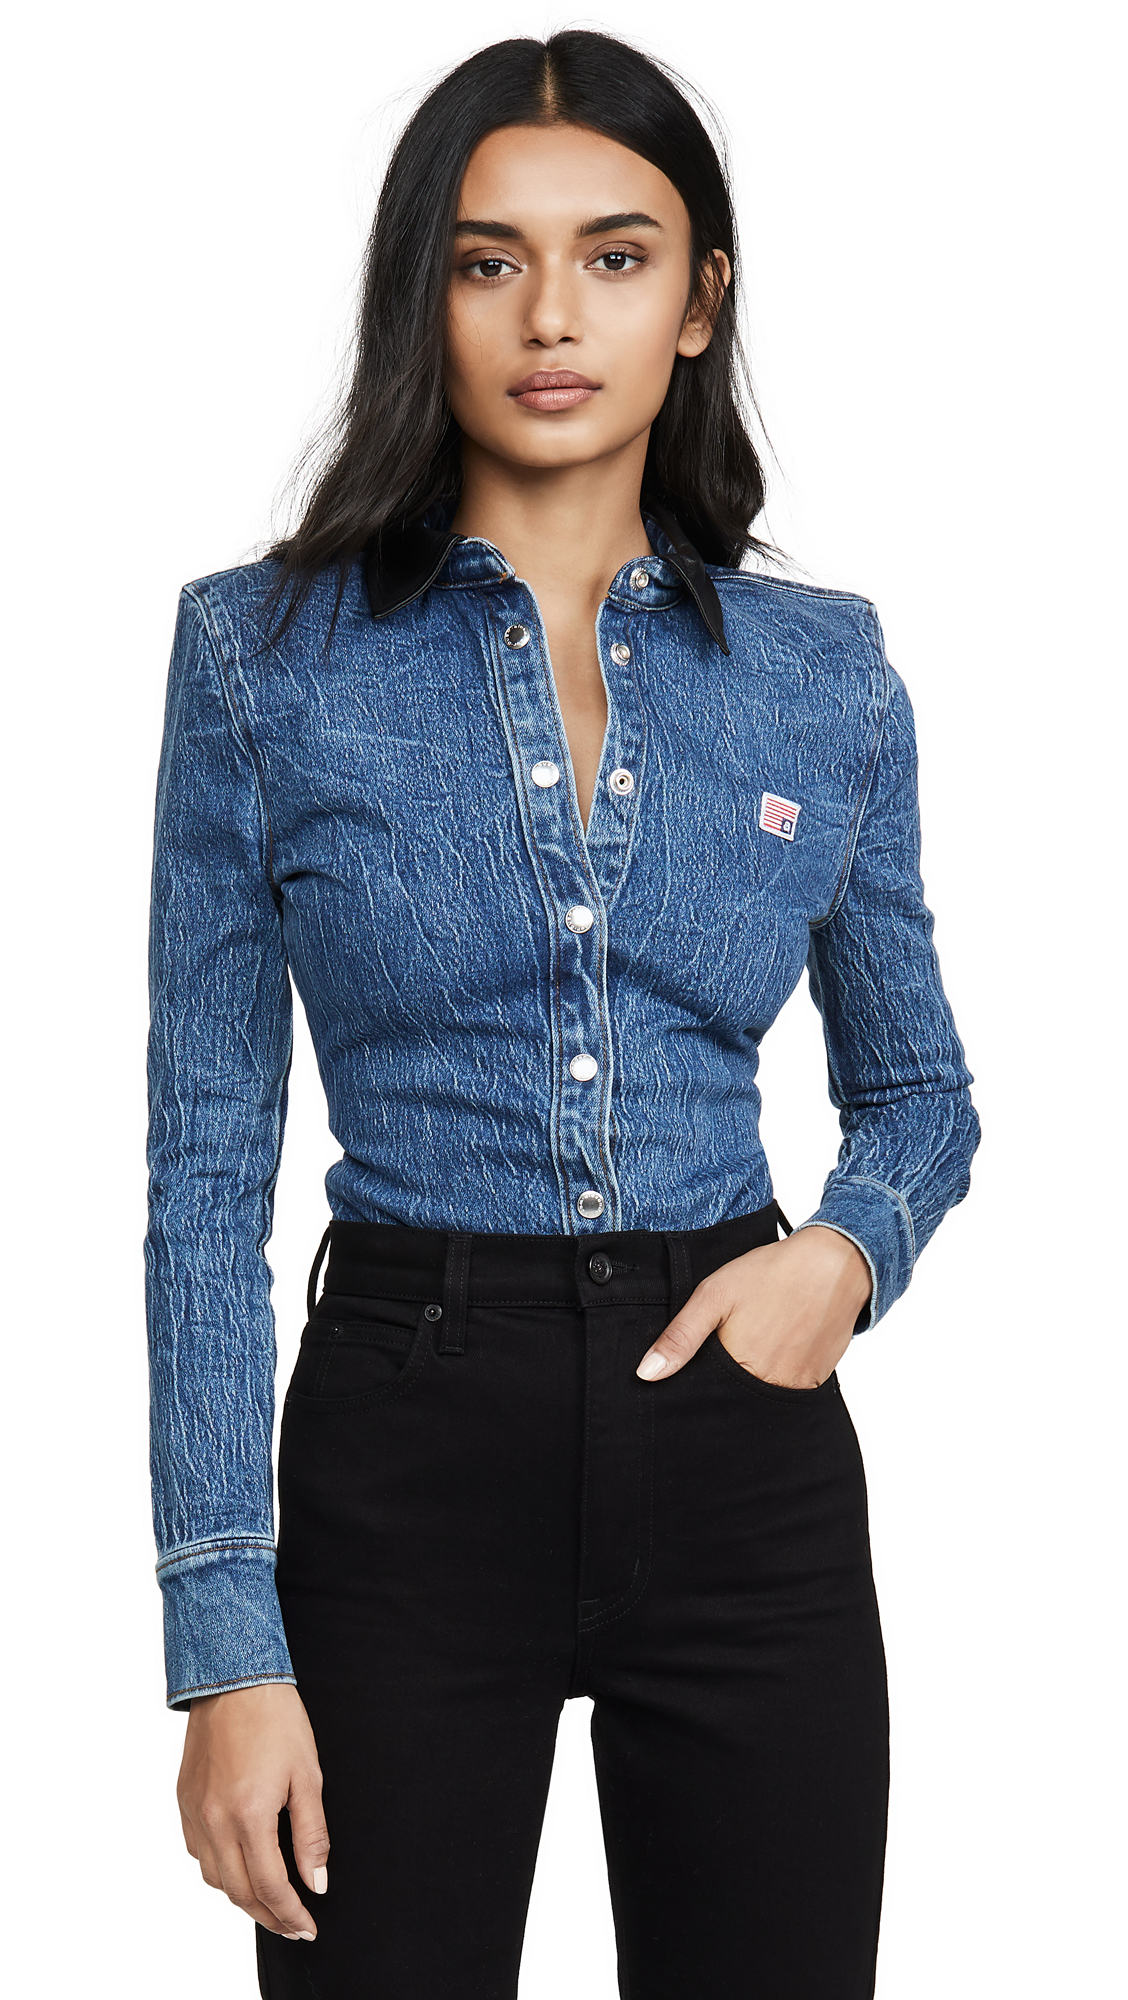 Alexander Wang Denim Button Long Sleeve Shirt with Leather Collar - 30% Off Sale